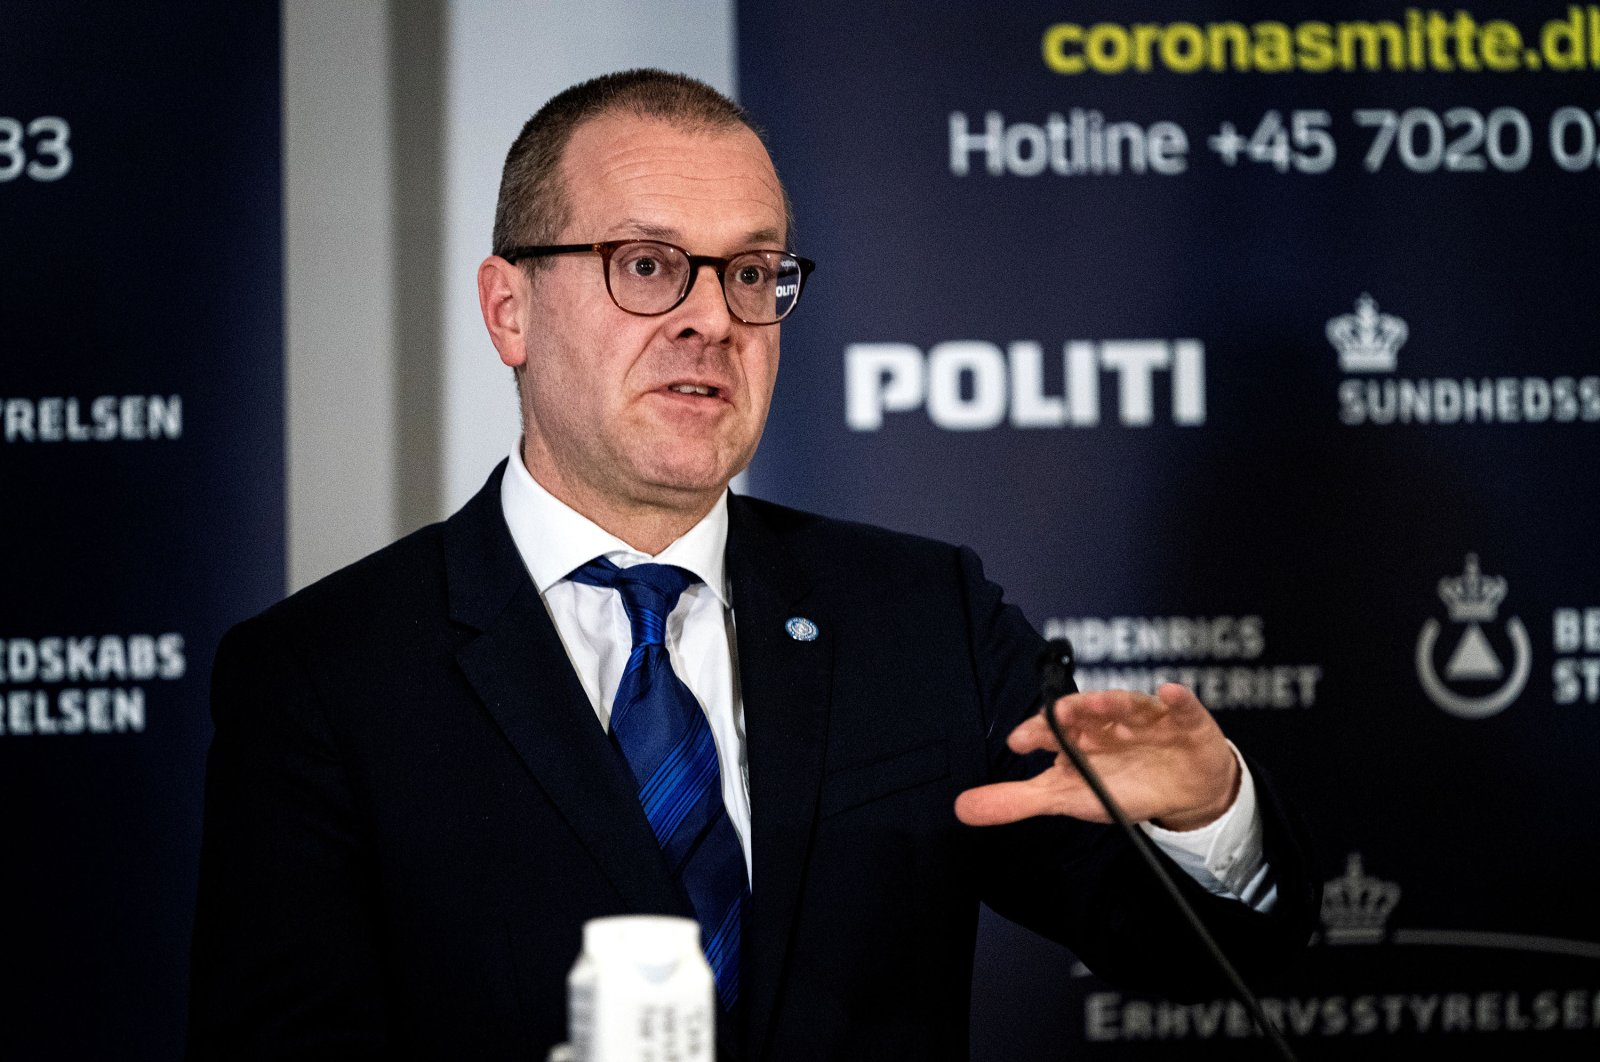 The Danish Health Boards director, Soeren Brostroem, (R), and WHO European director Hans Kluge, gives status on the Danish handling of coronavirus during a press briefing in Eigtveds Pakhus, Copenhagen, Denmark, March 27, 2020. (Reuters Photo)